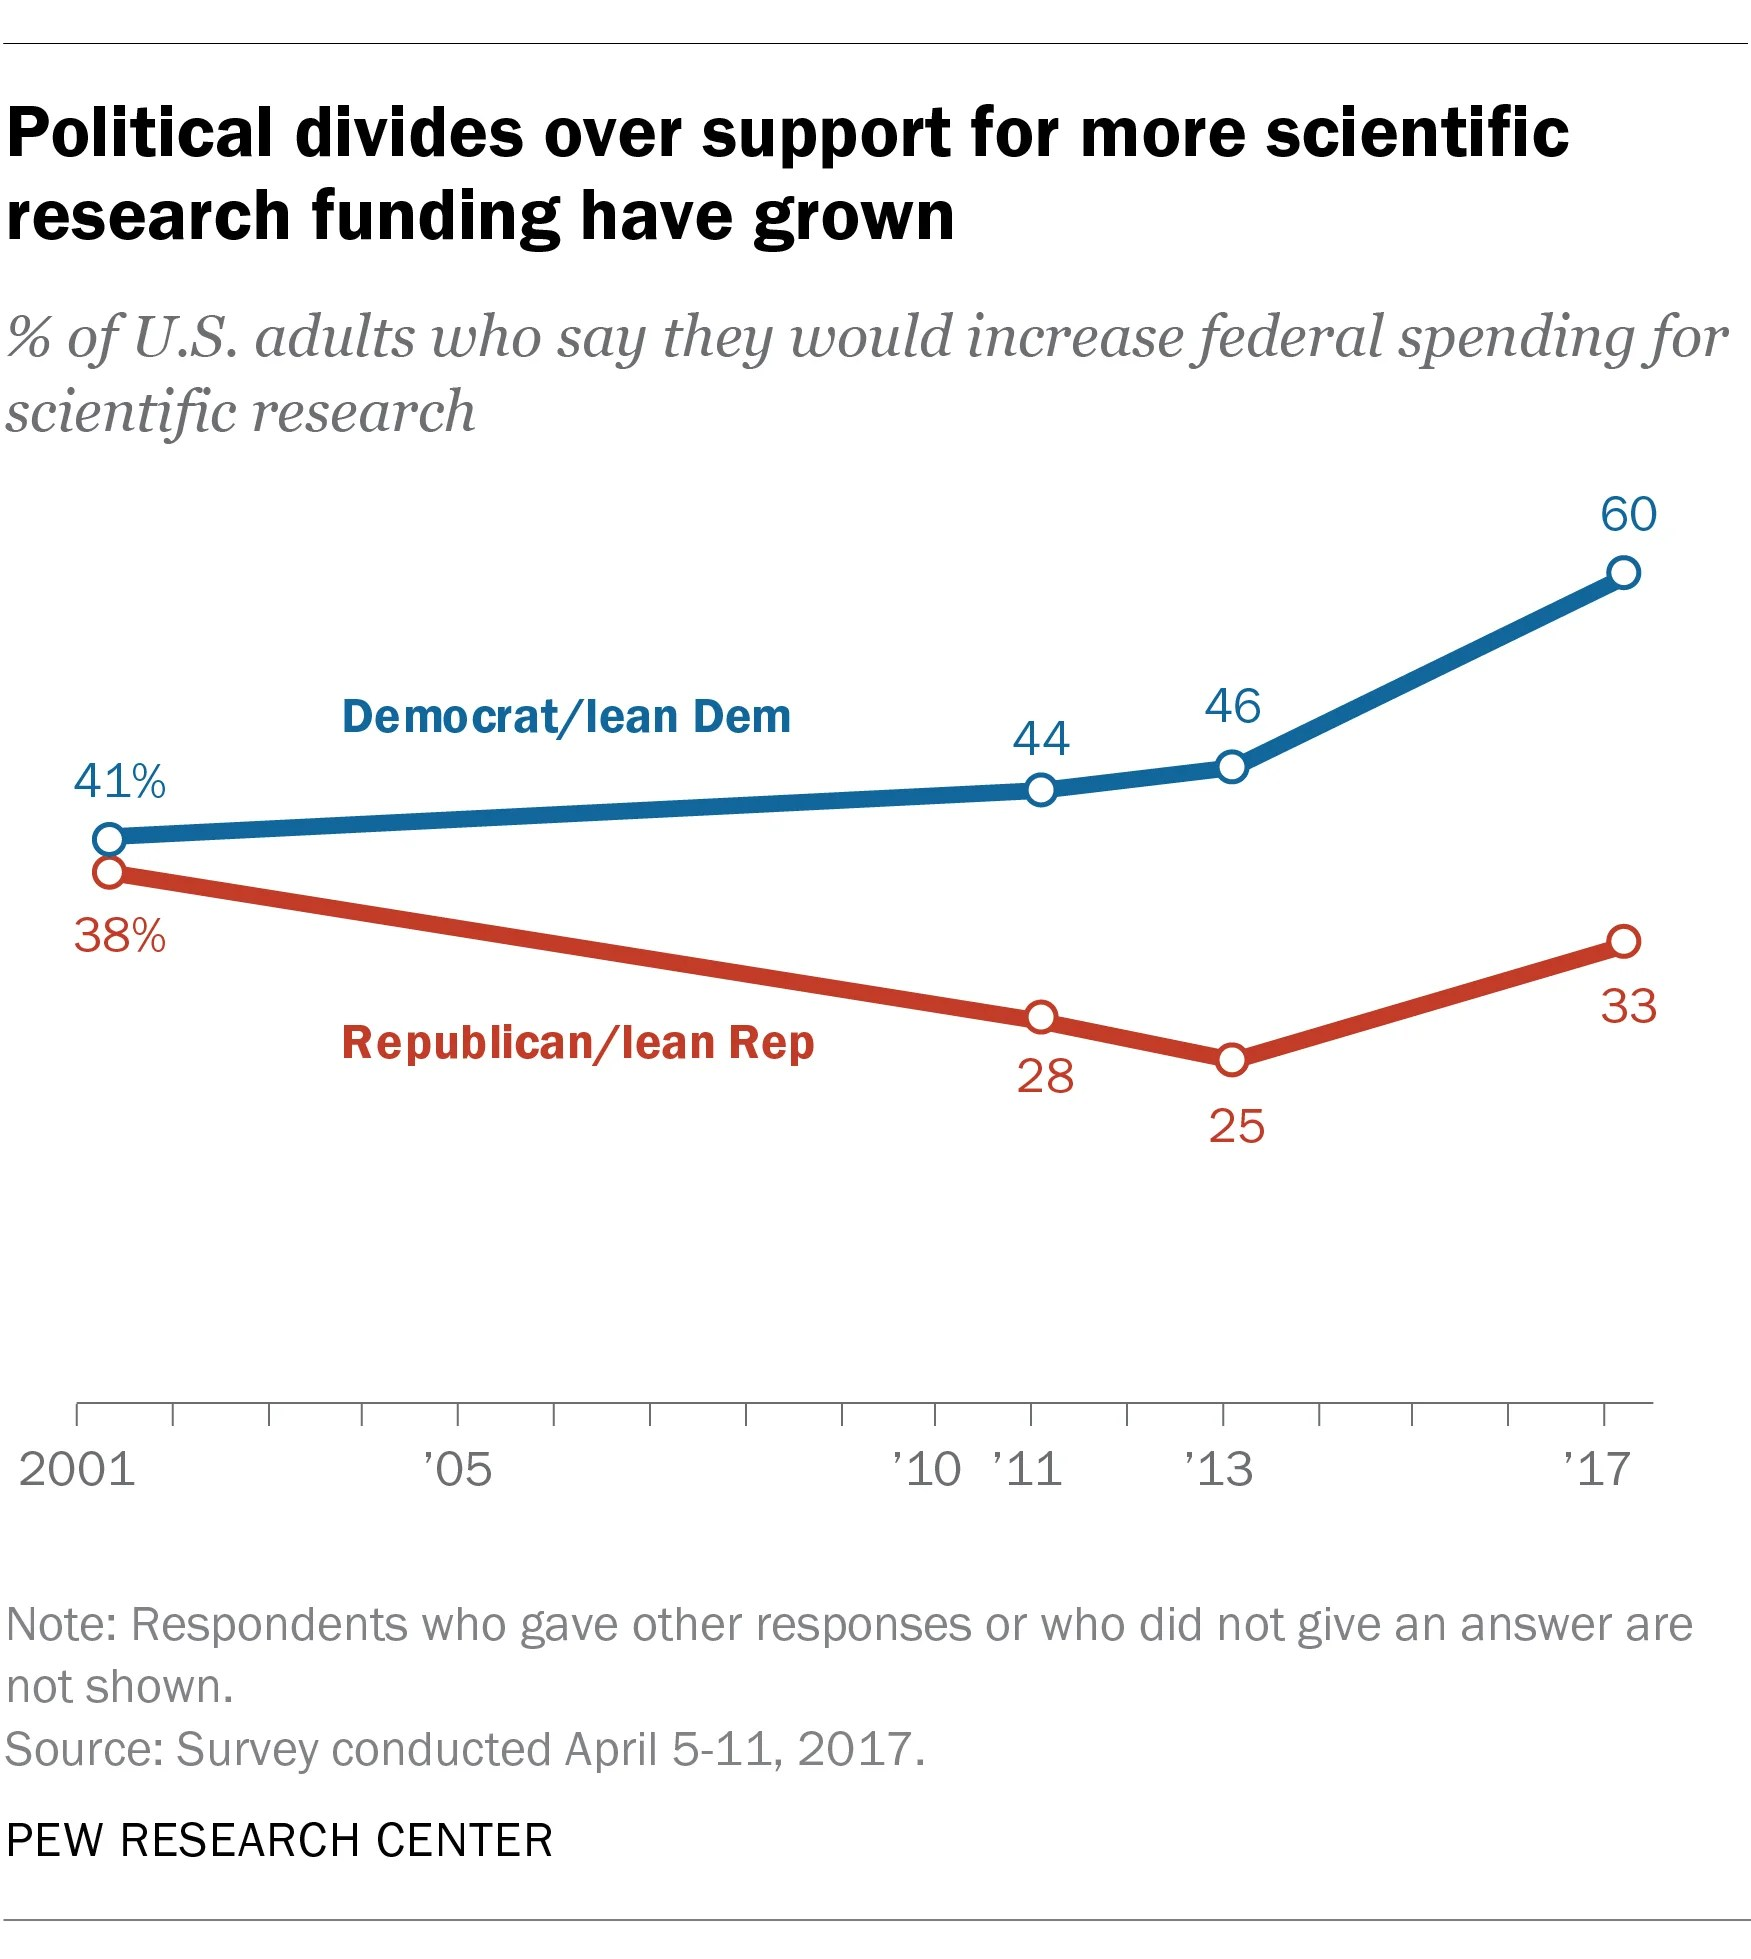 hight resolution of as with environmental regulations there is a significant partisan divide over federal spending for scientific research according to a survey conducted in